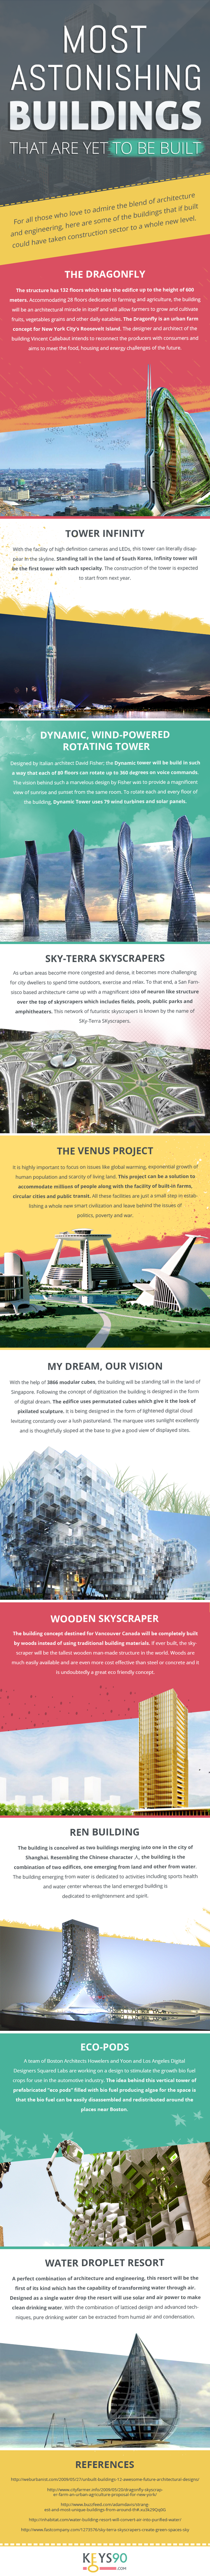 Most Astonishing Buildings That Are Yet To Be Built Infographic Building Concept Future Buildings Building Design